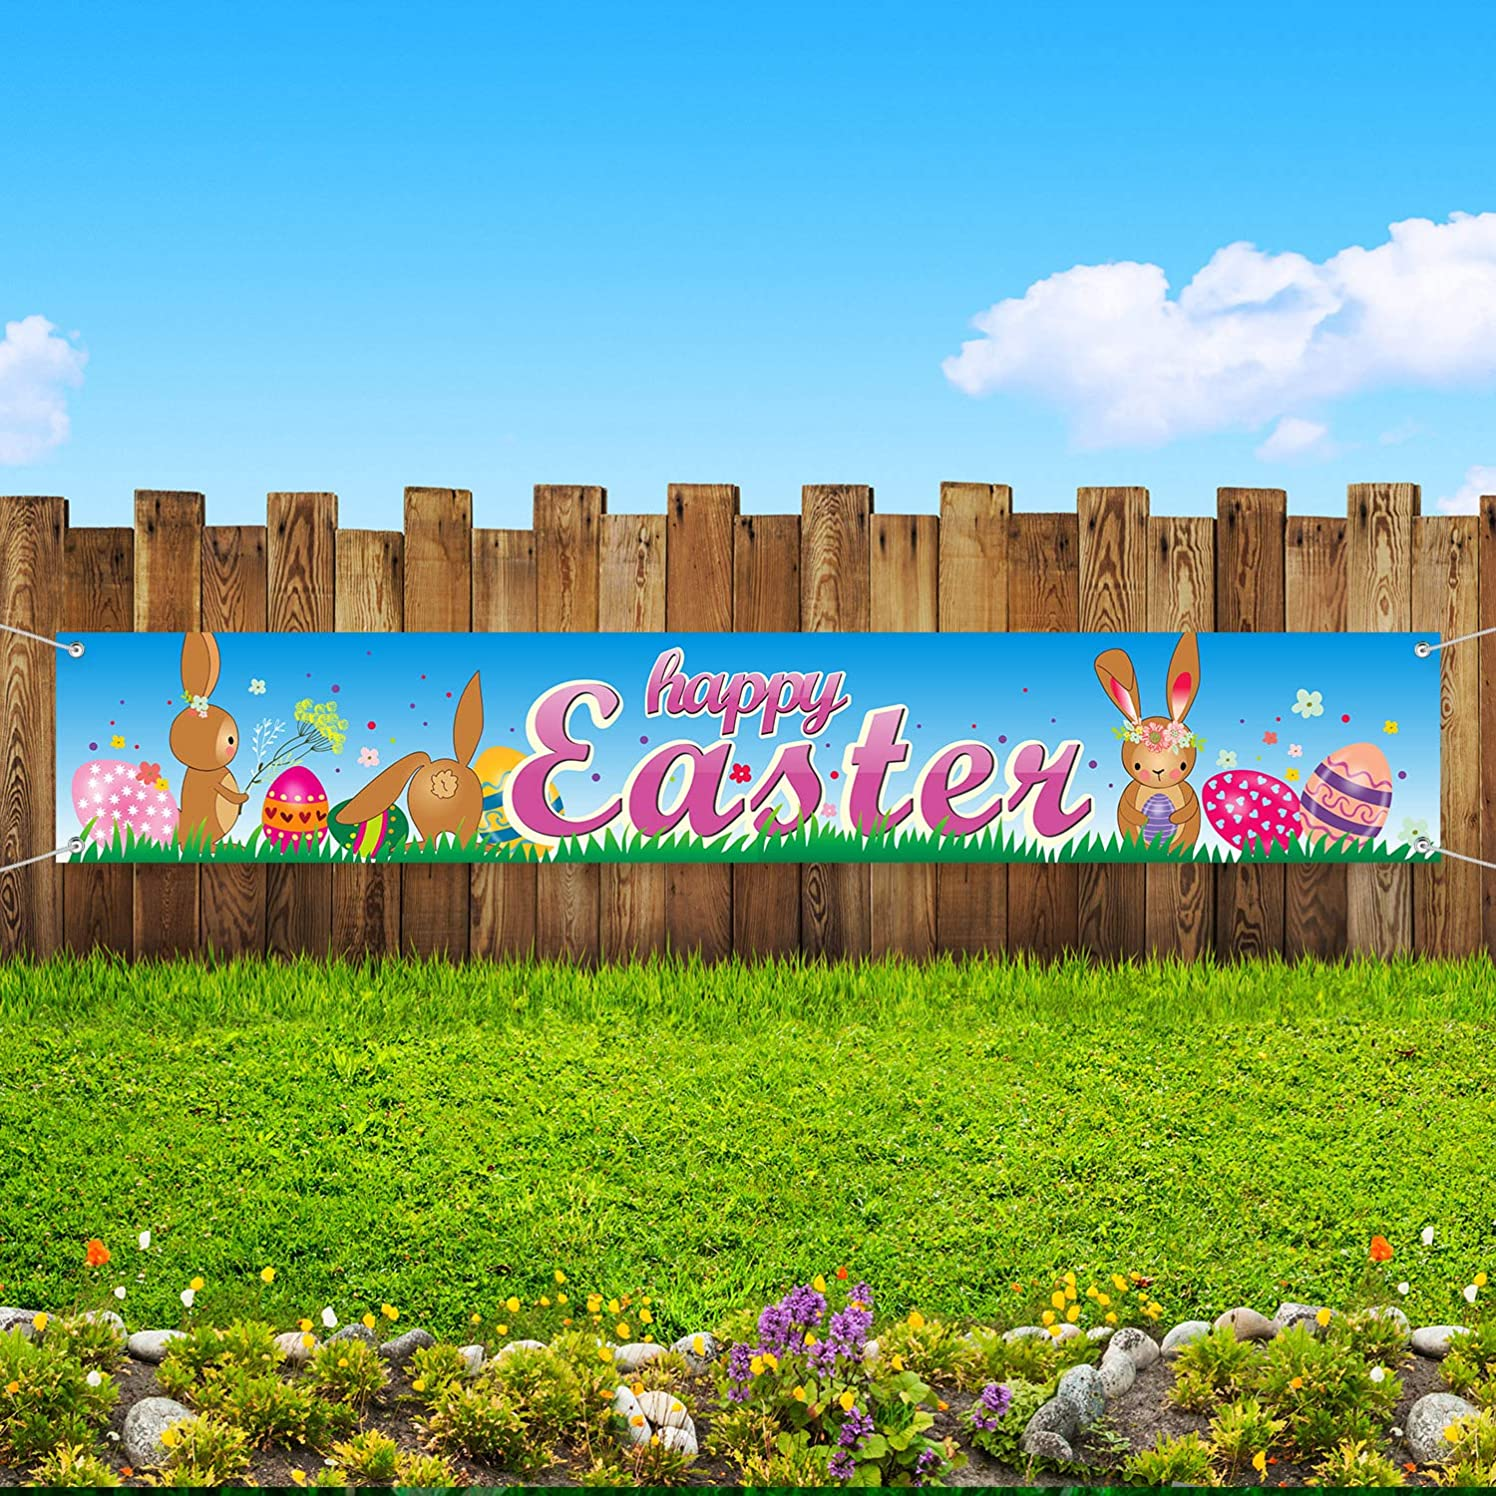 Easter Decorations, Easter Party Suppliers Easter Banner Garland 70.8 x 11.8 inch Fabric Indoor and Outdoor Easter Decor Bunny and Egg Banner